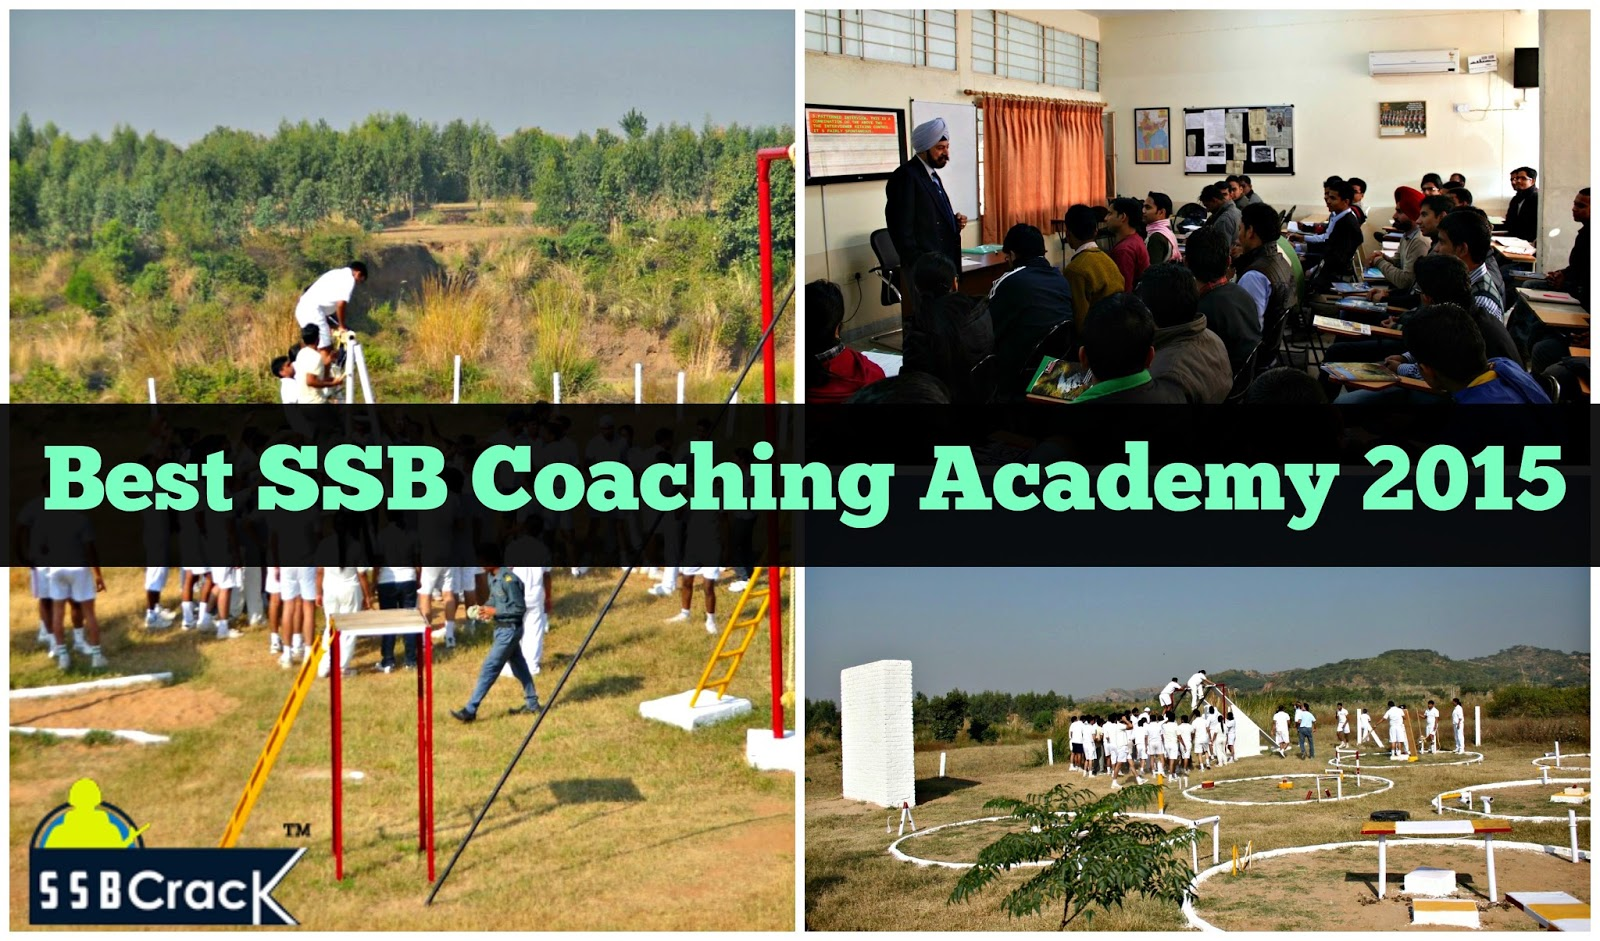 Best SSB Coaching Academy 2015